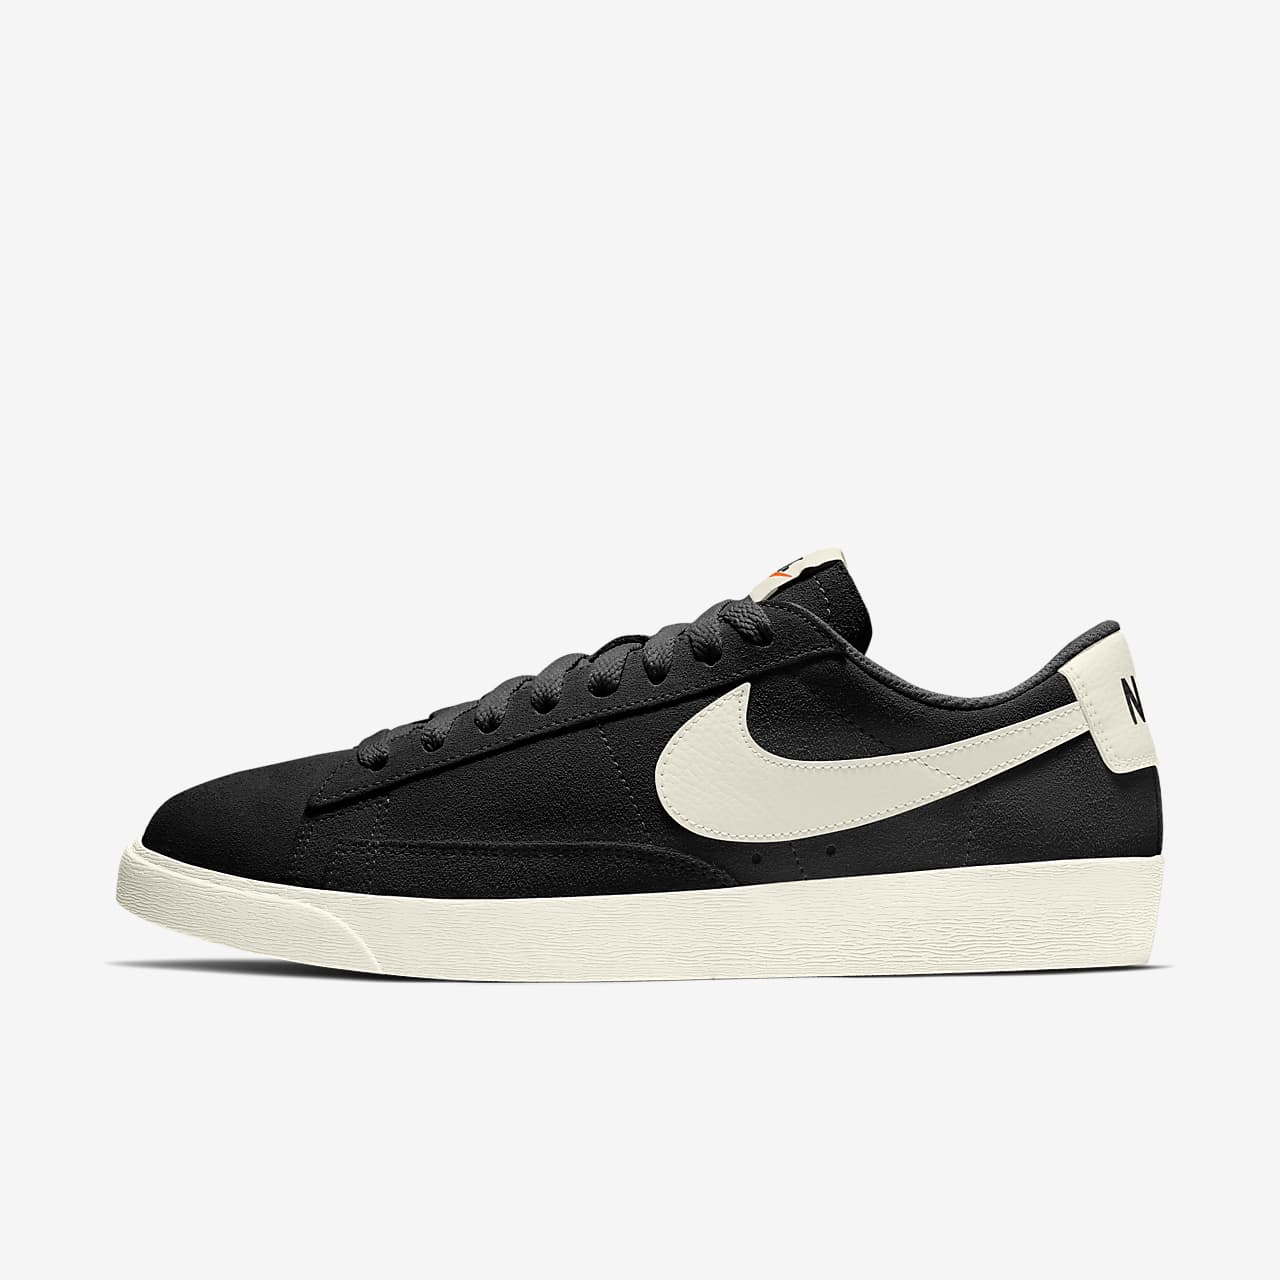 reputable site b2350 a565a ... Chaussure Nike Blazer Low Suede pour Femme